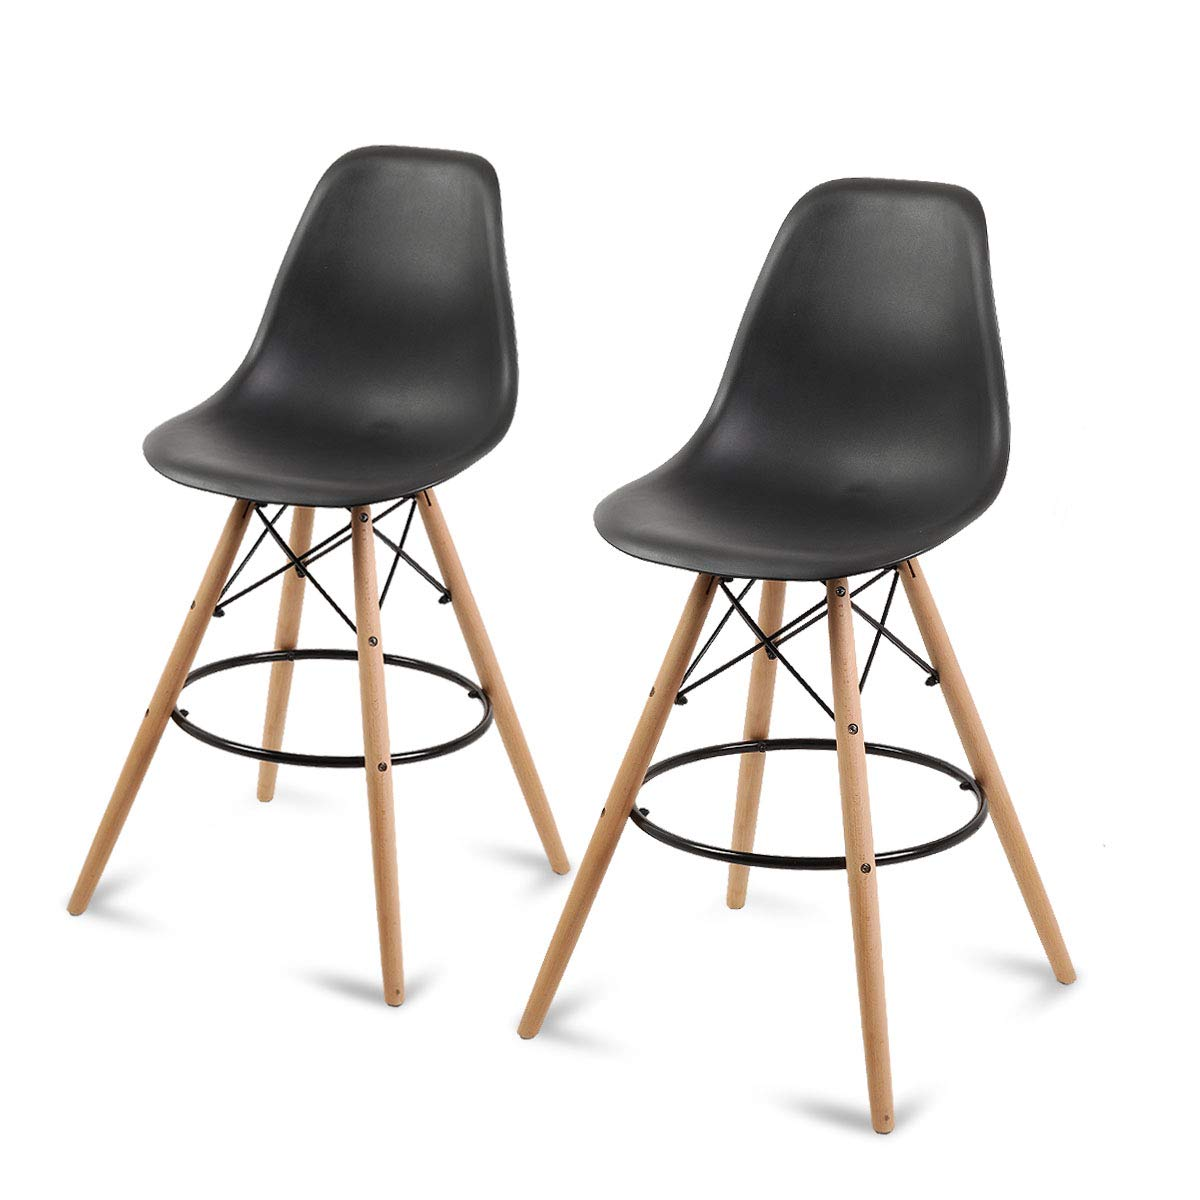 Set of 2 Counter Height High Island Stool Patio Dining Bar Pub Chairs, Black